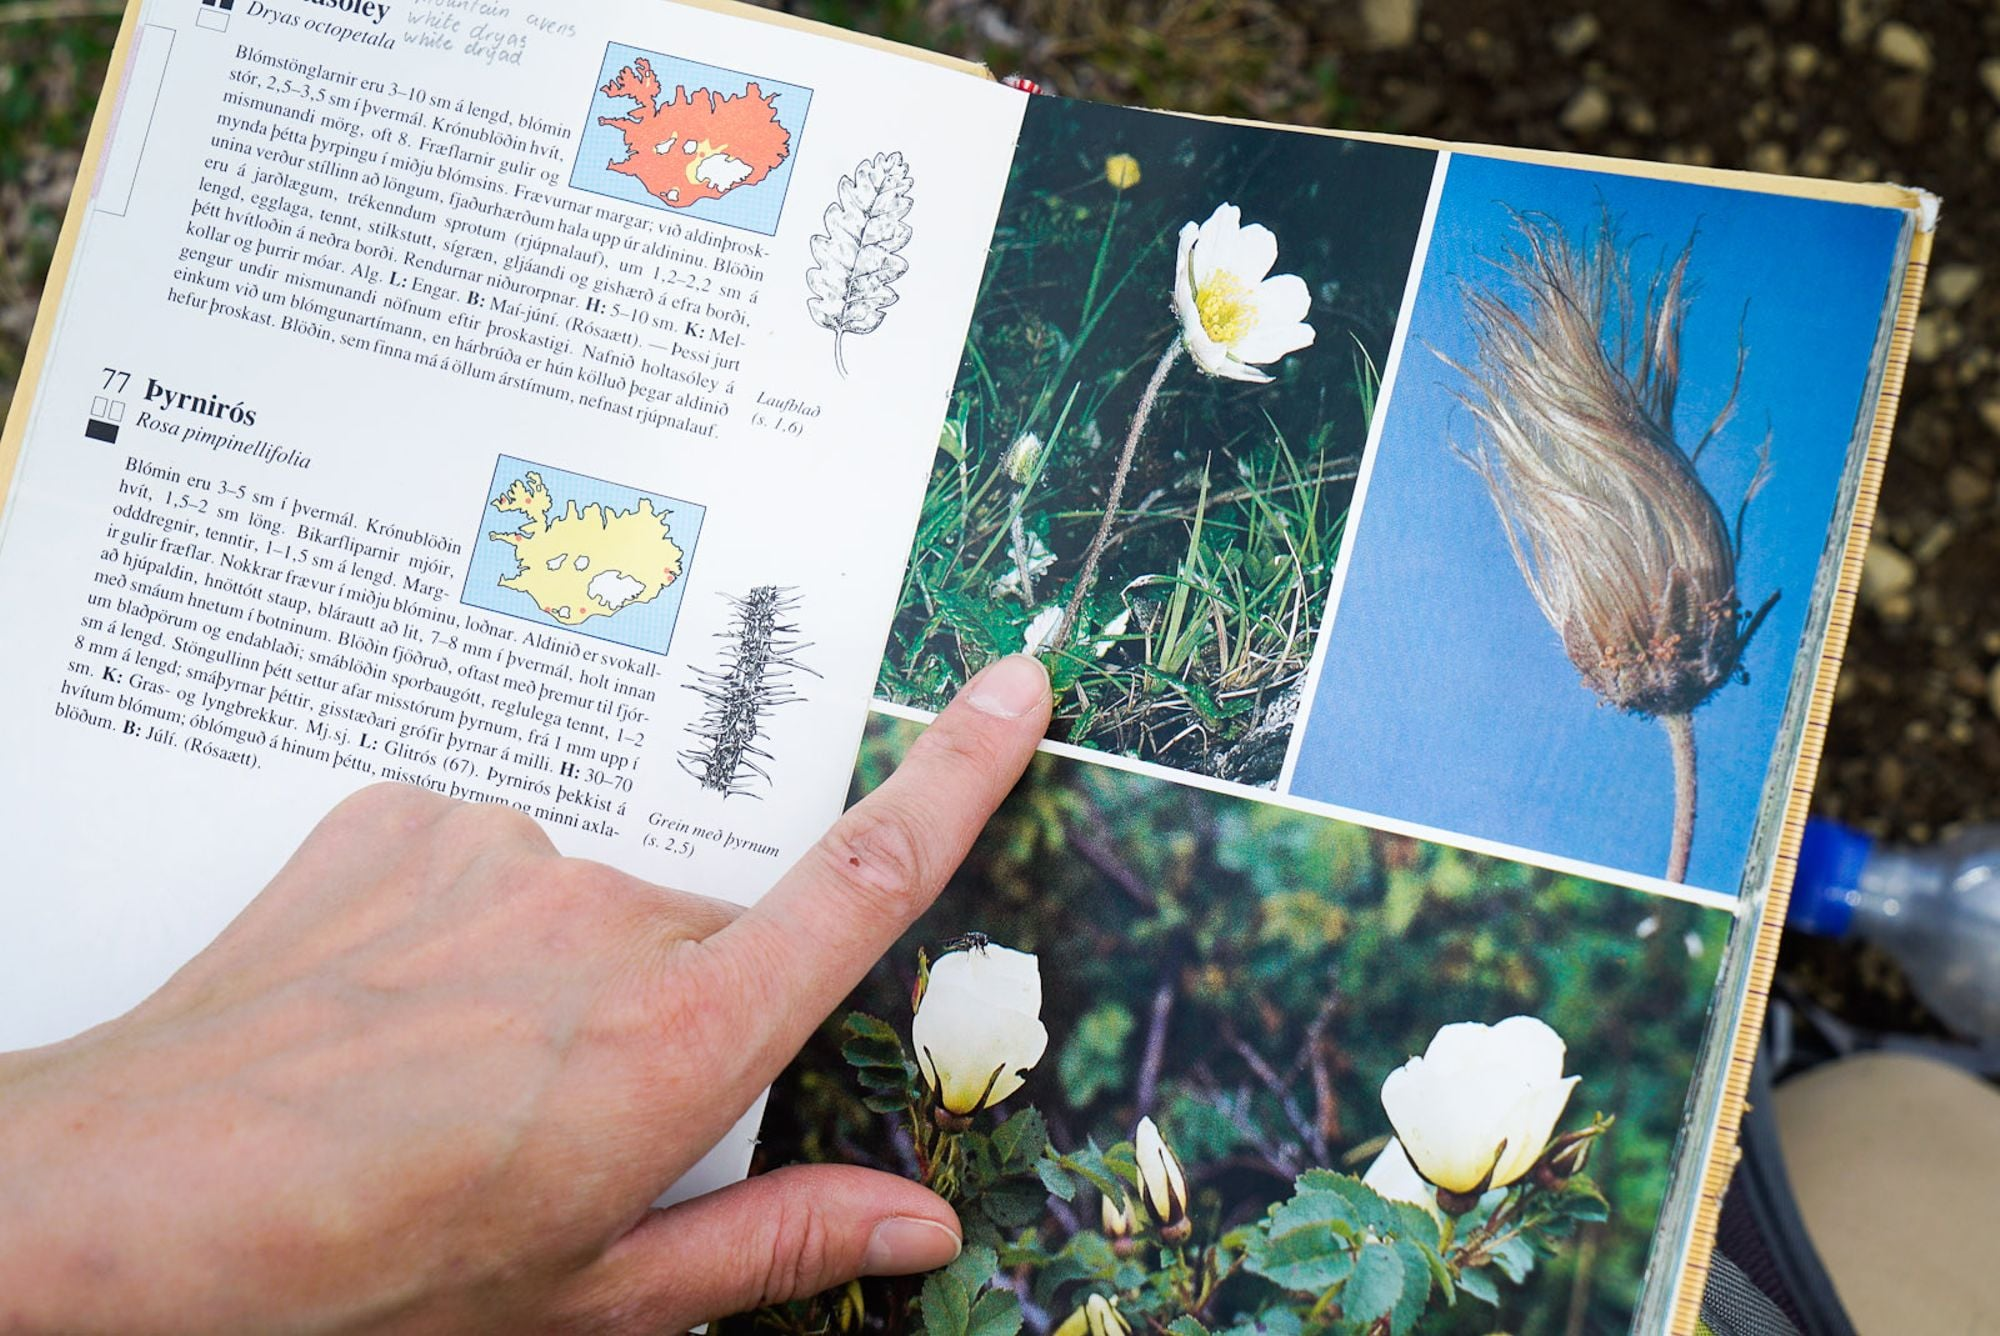 Dryas octopetala - the national flower